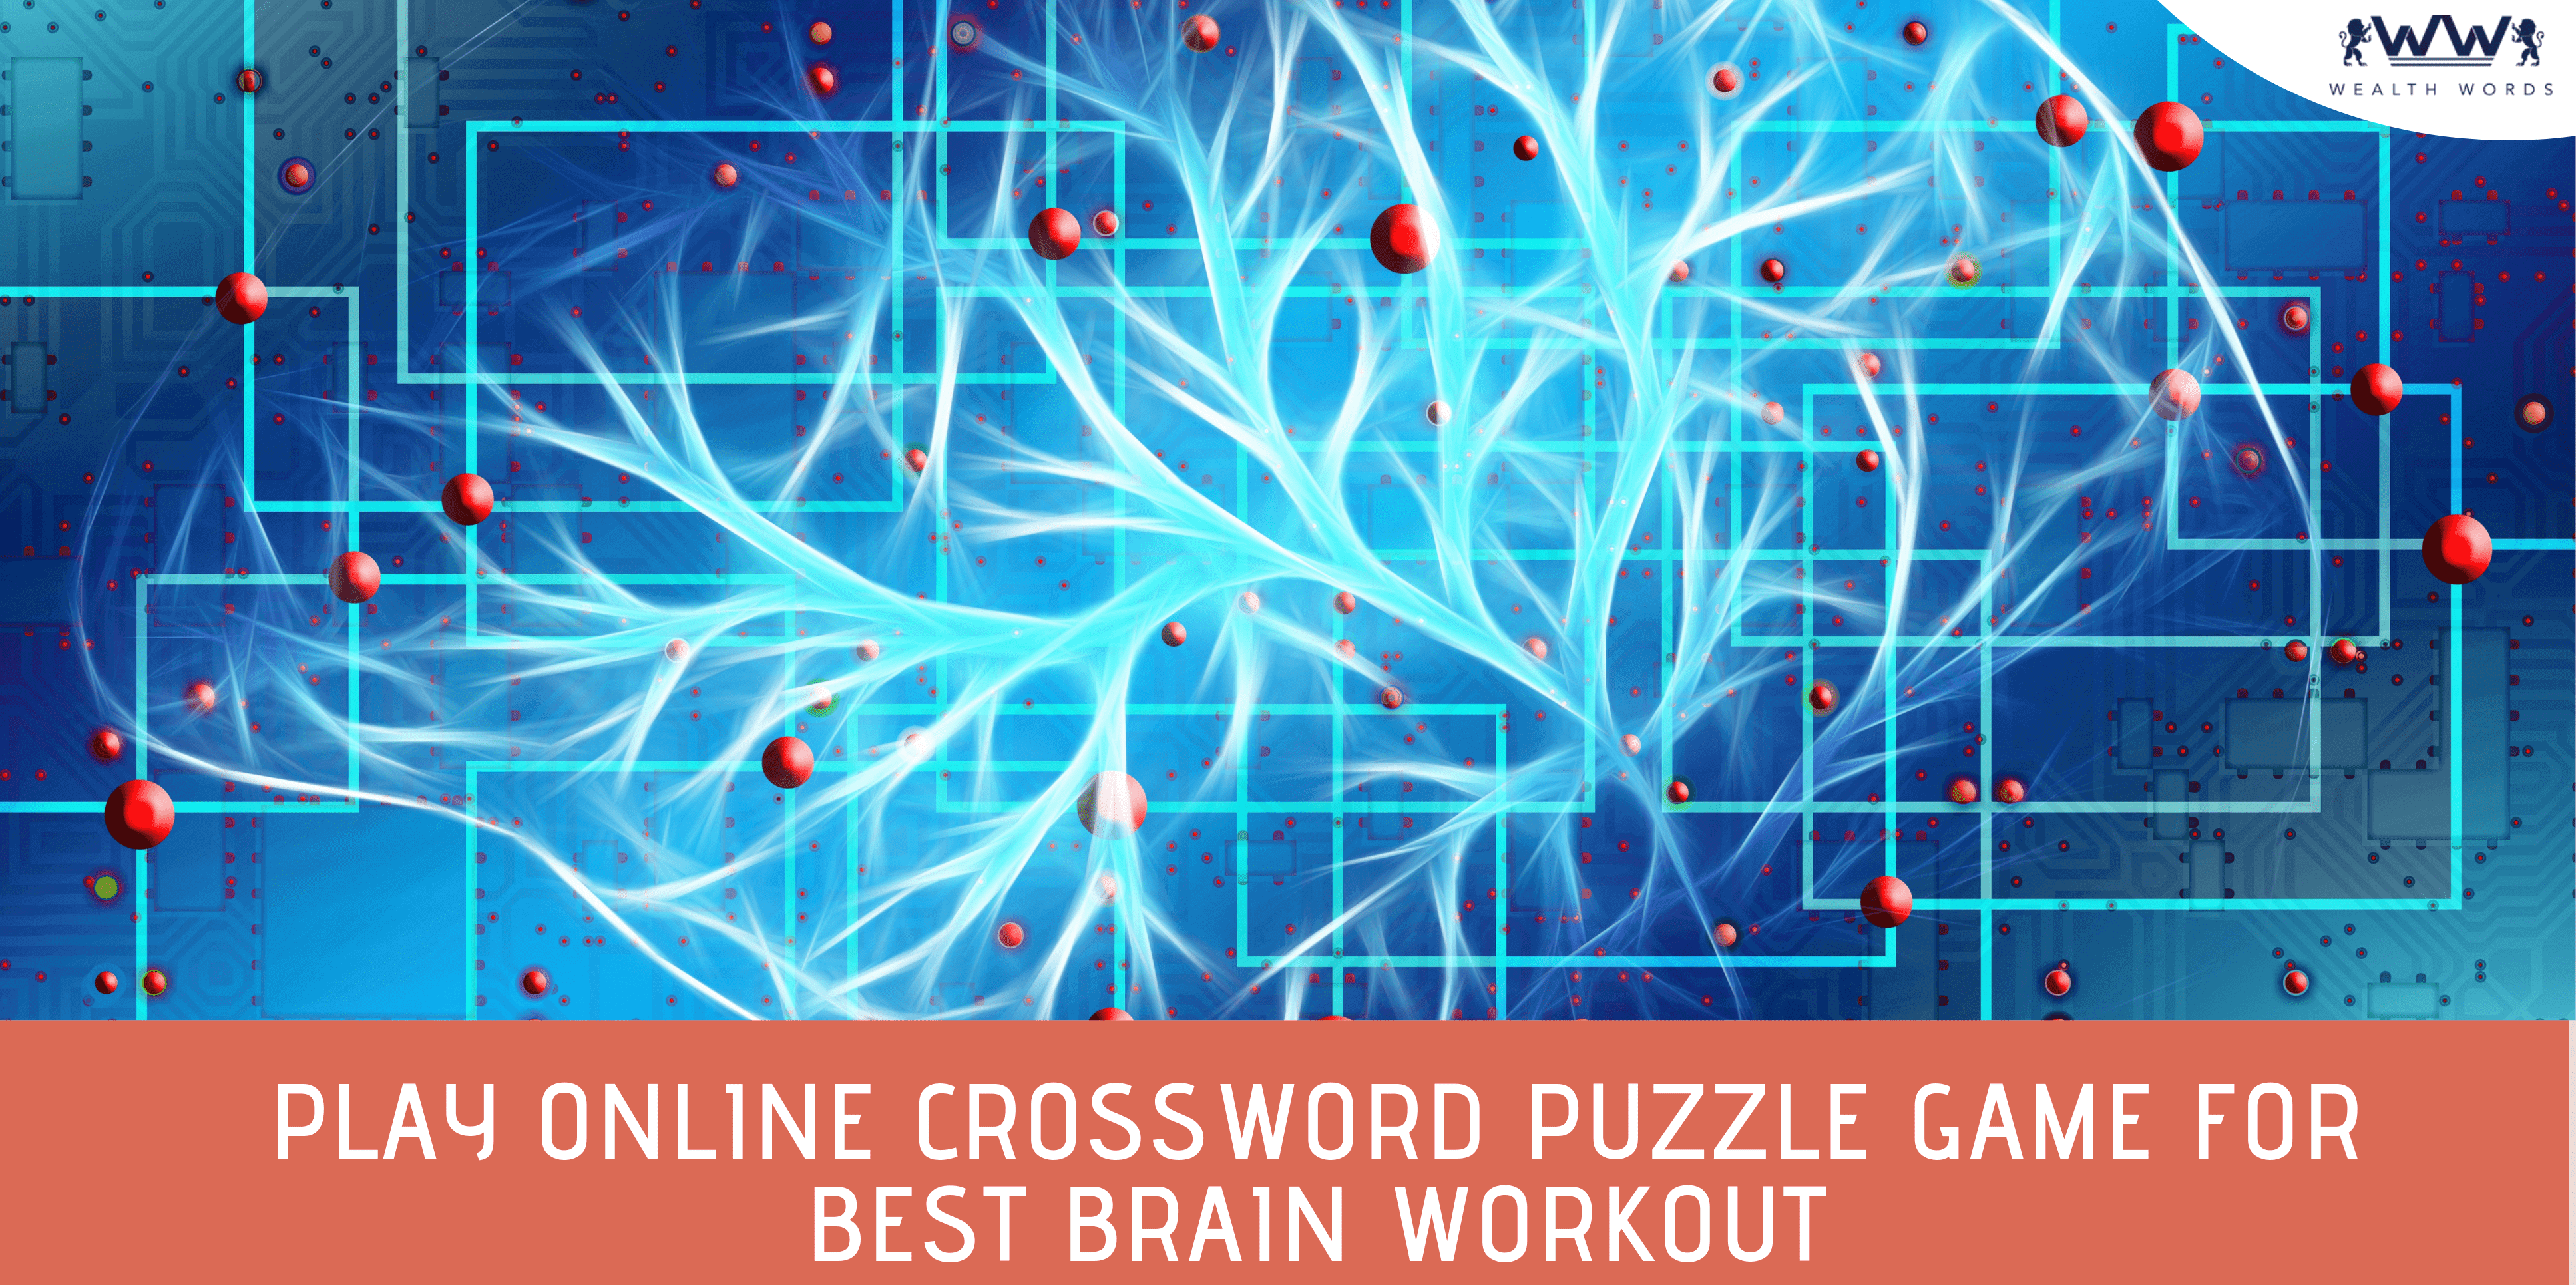 Puzzel Online Play Online Crossword Puzzle Game For Best Brain Workout